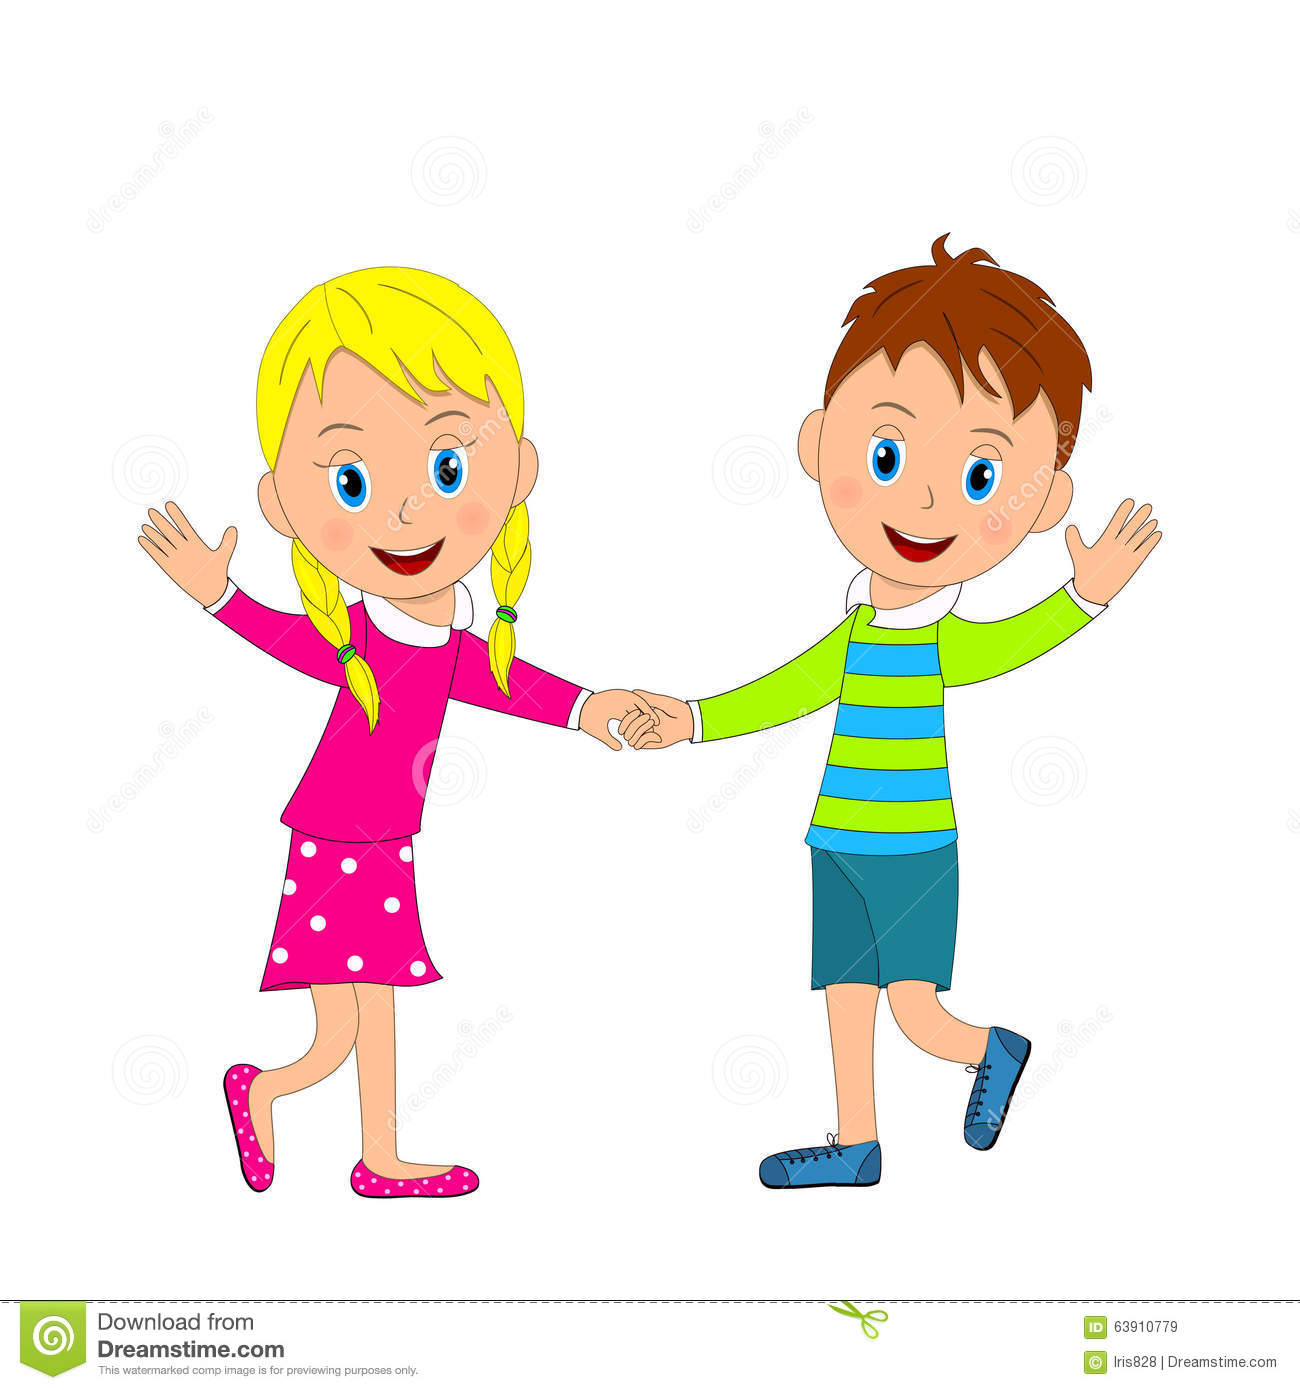 cute boy and girl smiling holding hands and waving stock vector rh dreamstime com Black and White Clip Art Boy and Girl Holding Hands Black ADN White Clip Art Boy and Girl Holding Hands